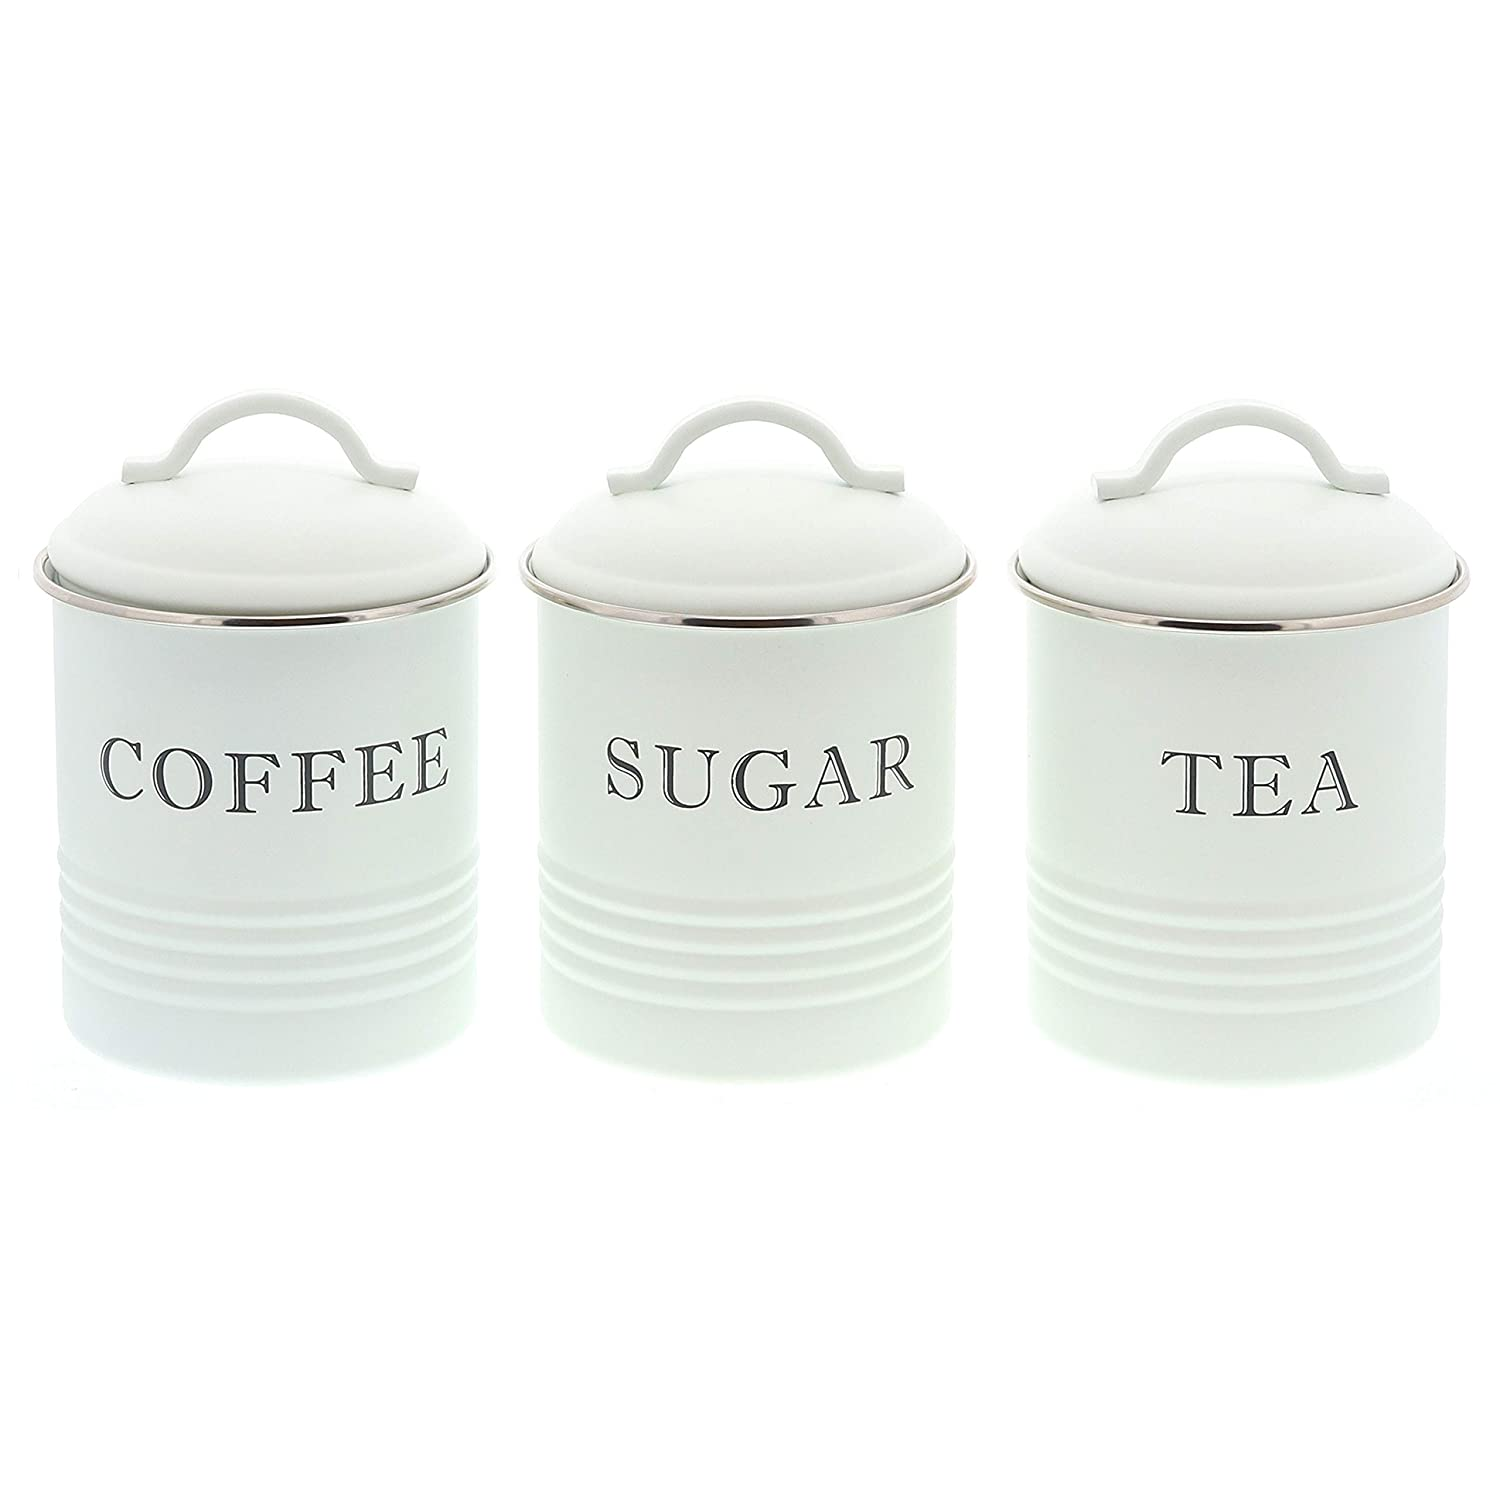 Barnyard Designs Decorative Kitchen Canisters with Lids White Metal Rustic Vintage Farmhouse Country Decor for Sugar Coffee Tea Storage (Set of 3)